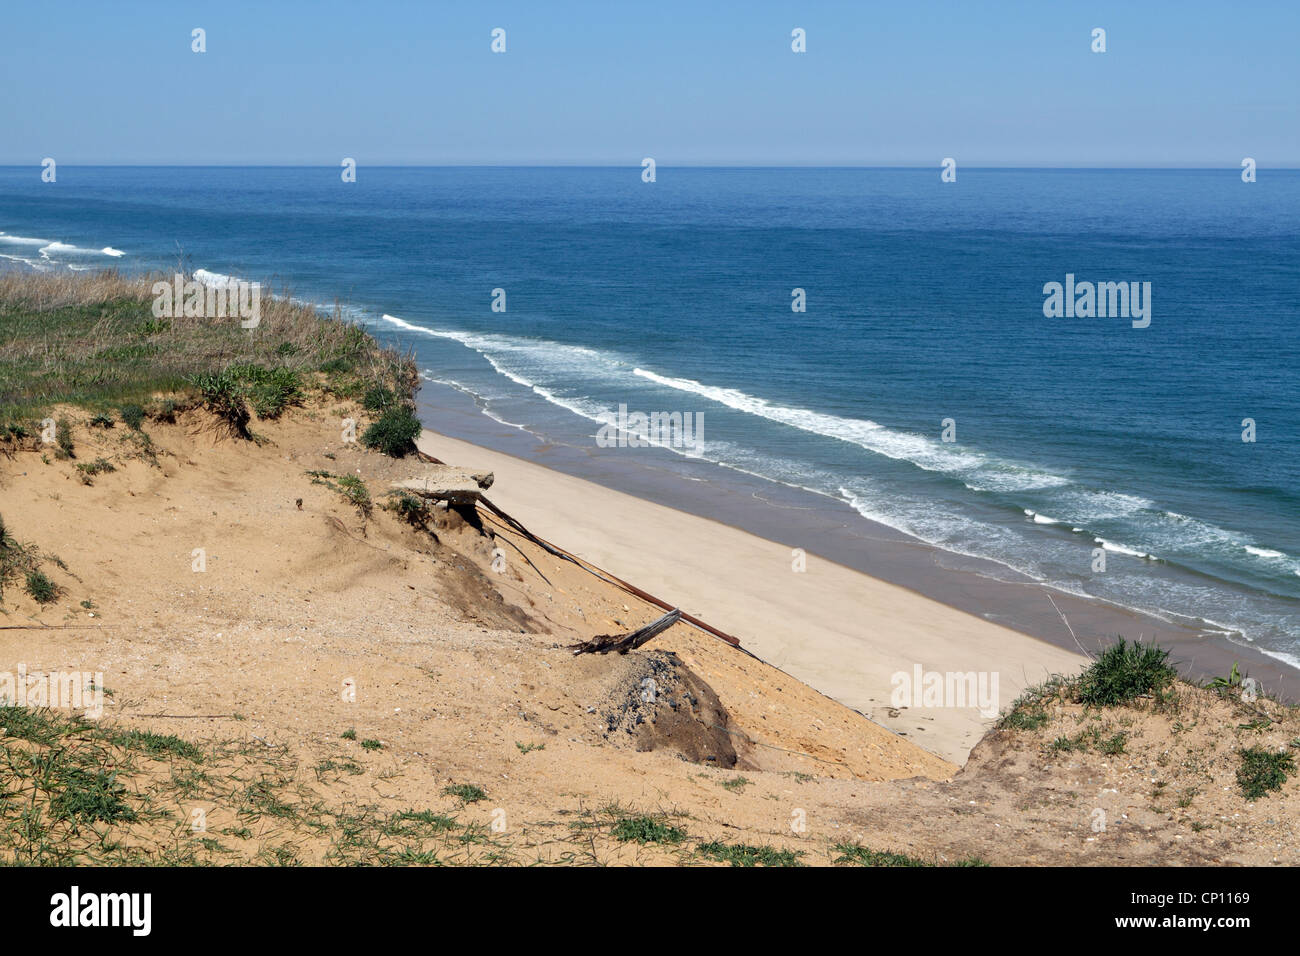 A view of the beach from the cliffs near the Cape Cod Lighthouse, North Truro, Massachusetts, USA - Stock Image